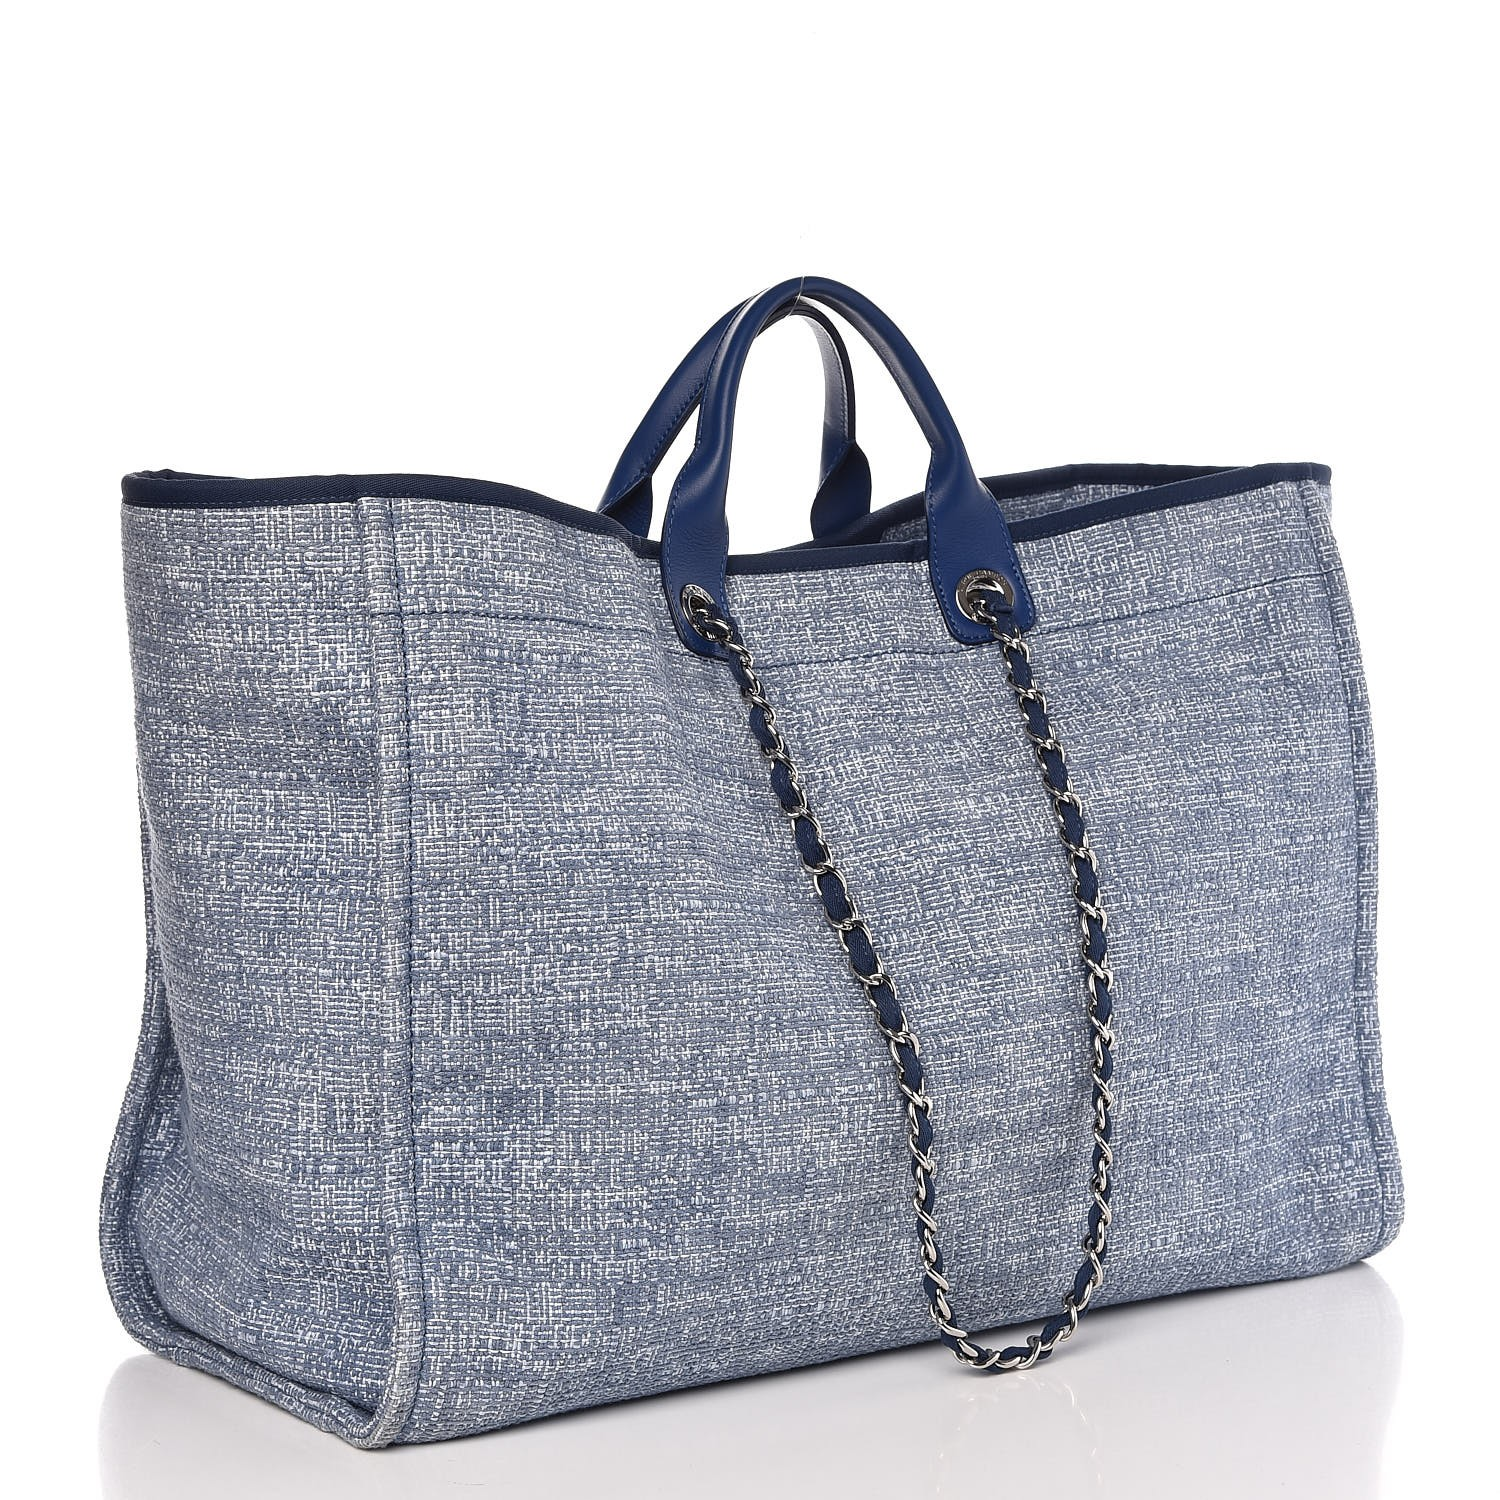 3a016260680dfc CHANEL Canvas Extra Large Deauville Tote Blue 307178